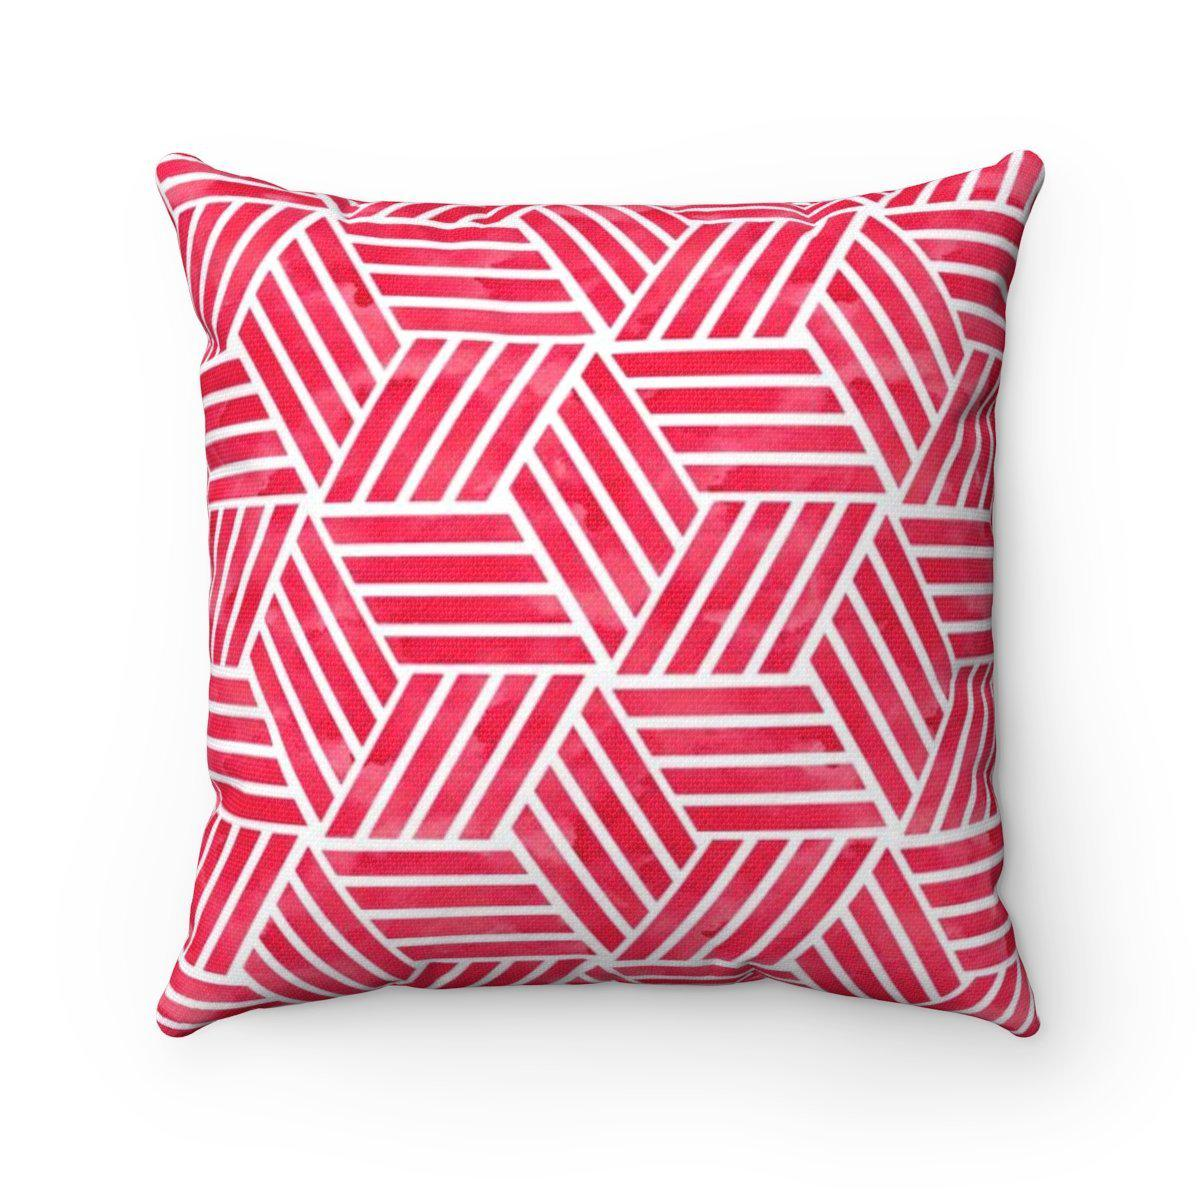 Red geometric decorative cushion cover-Home Decor - Decorative Accents - Pillows & Throws - Decorative Pillows-Maison d'Elite-Très Elite